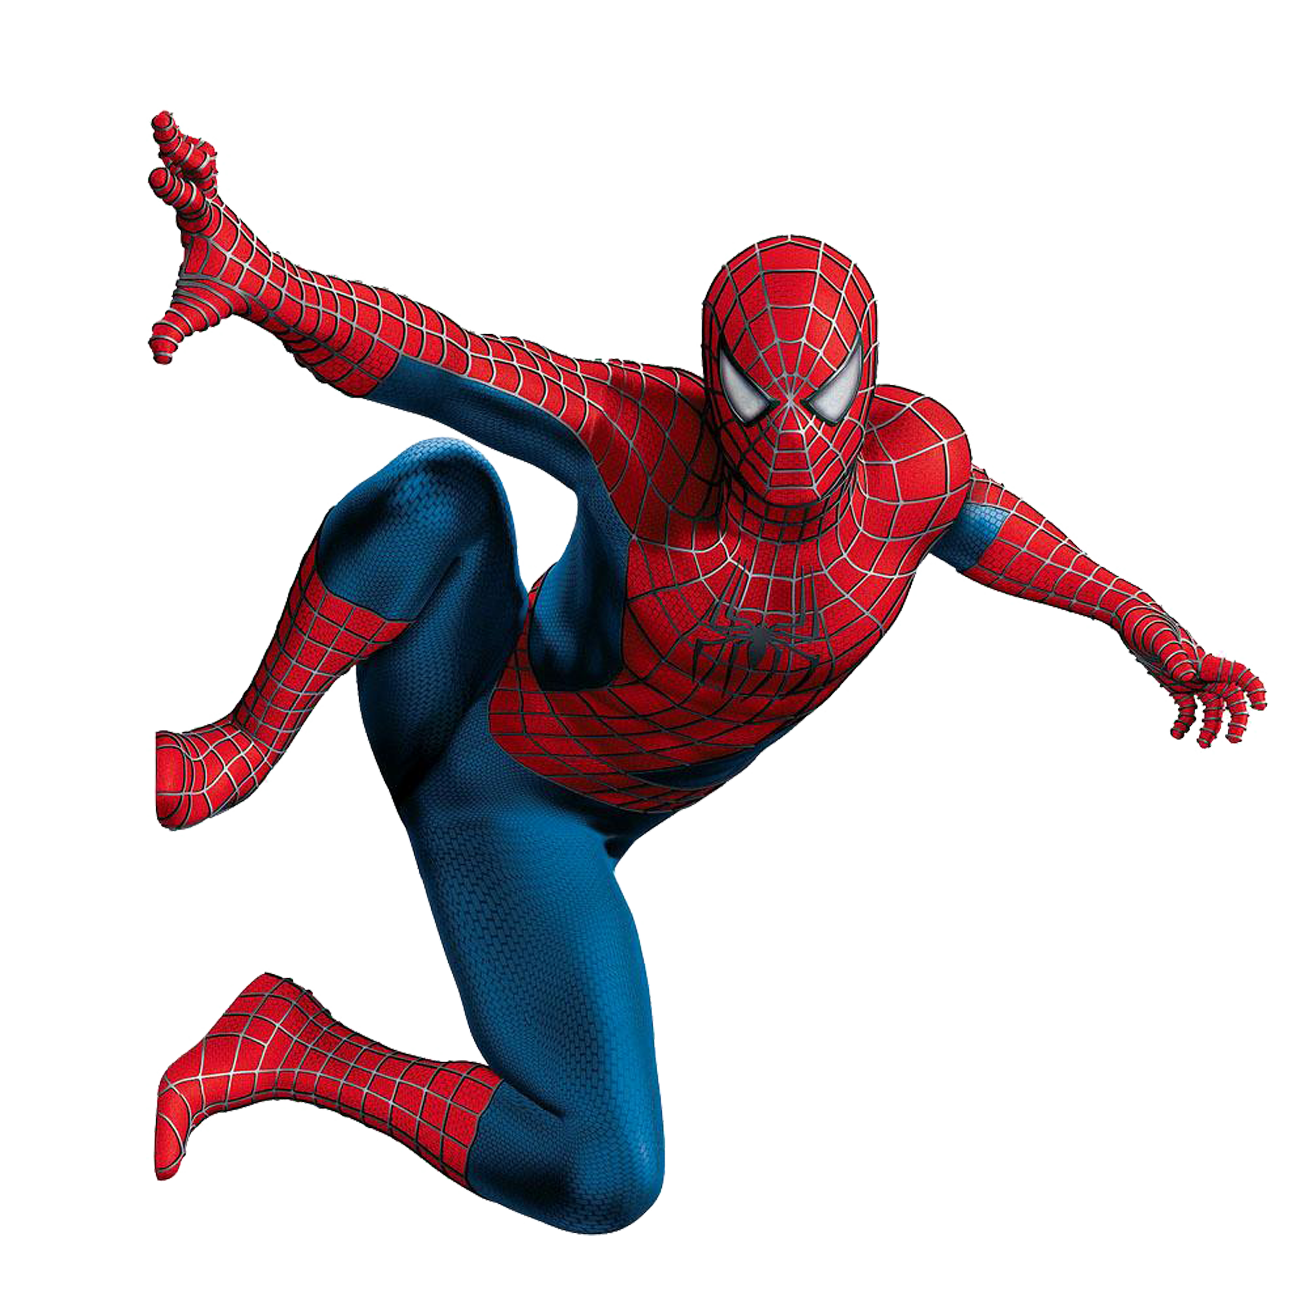 Spiderman PNG - 111030